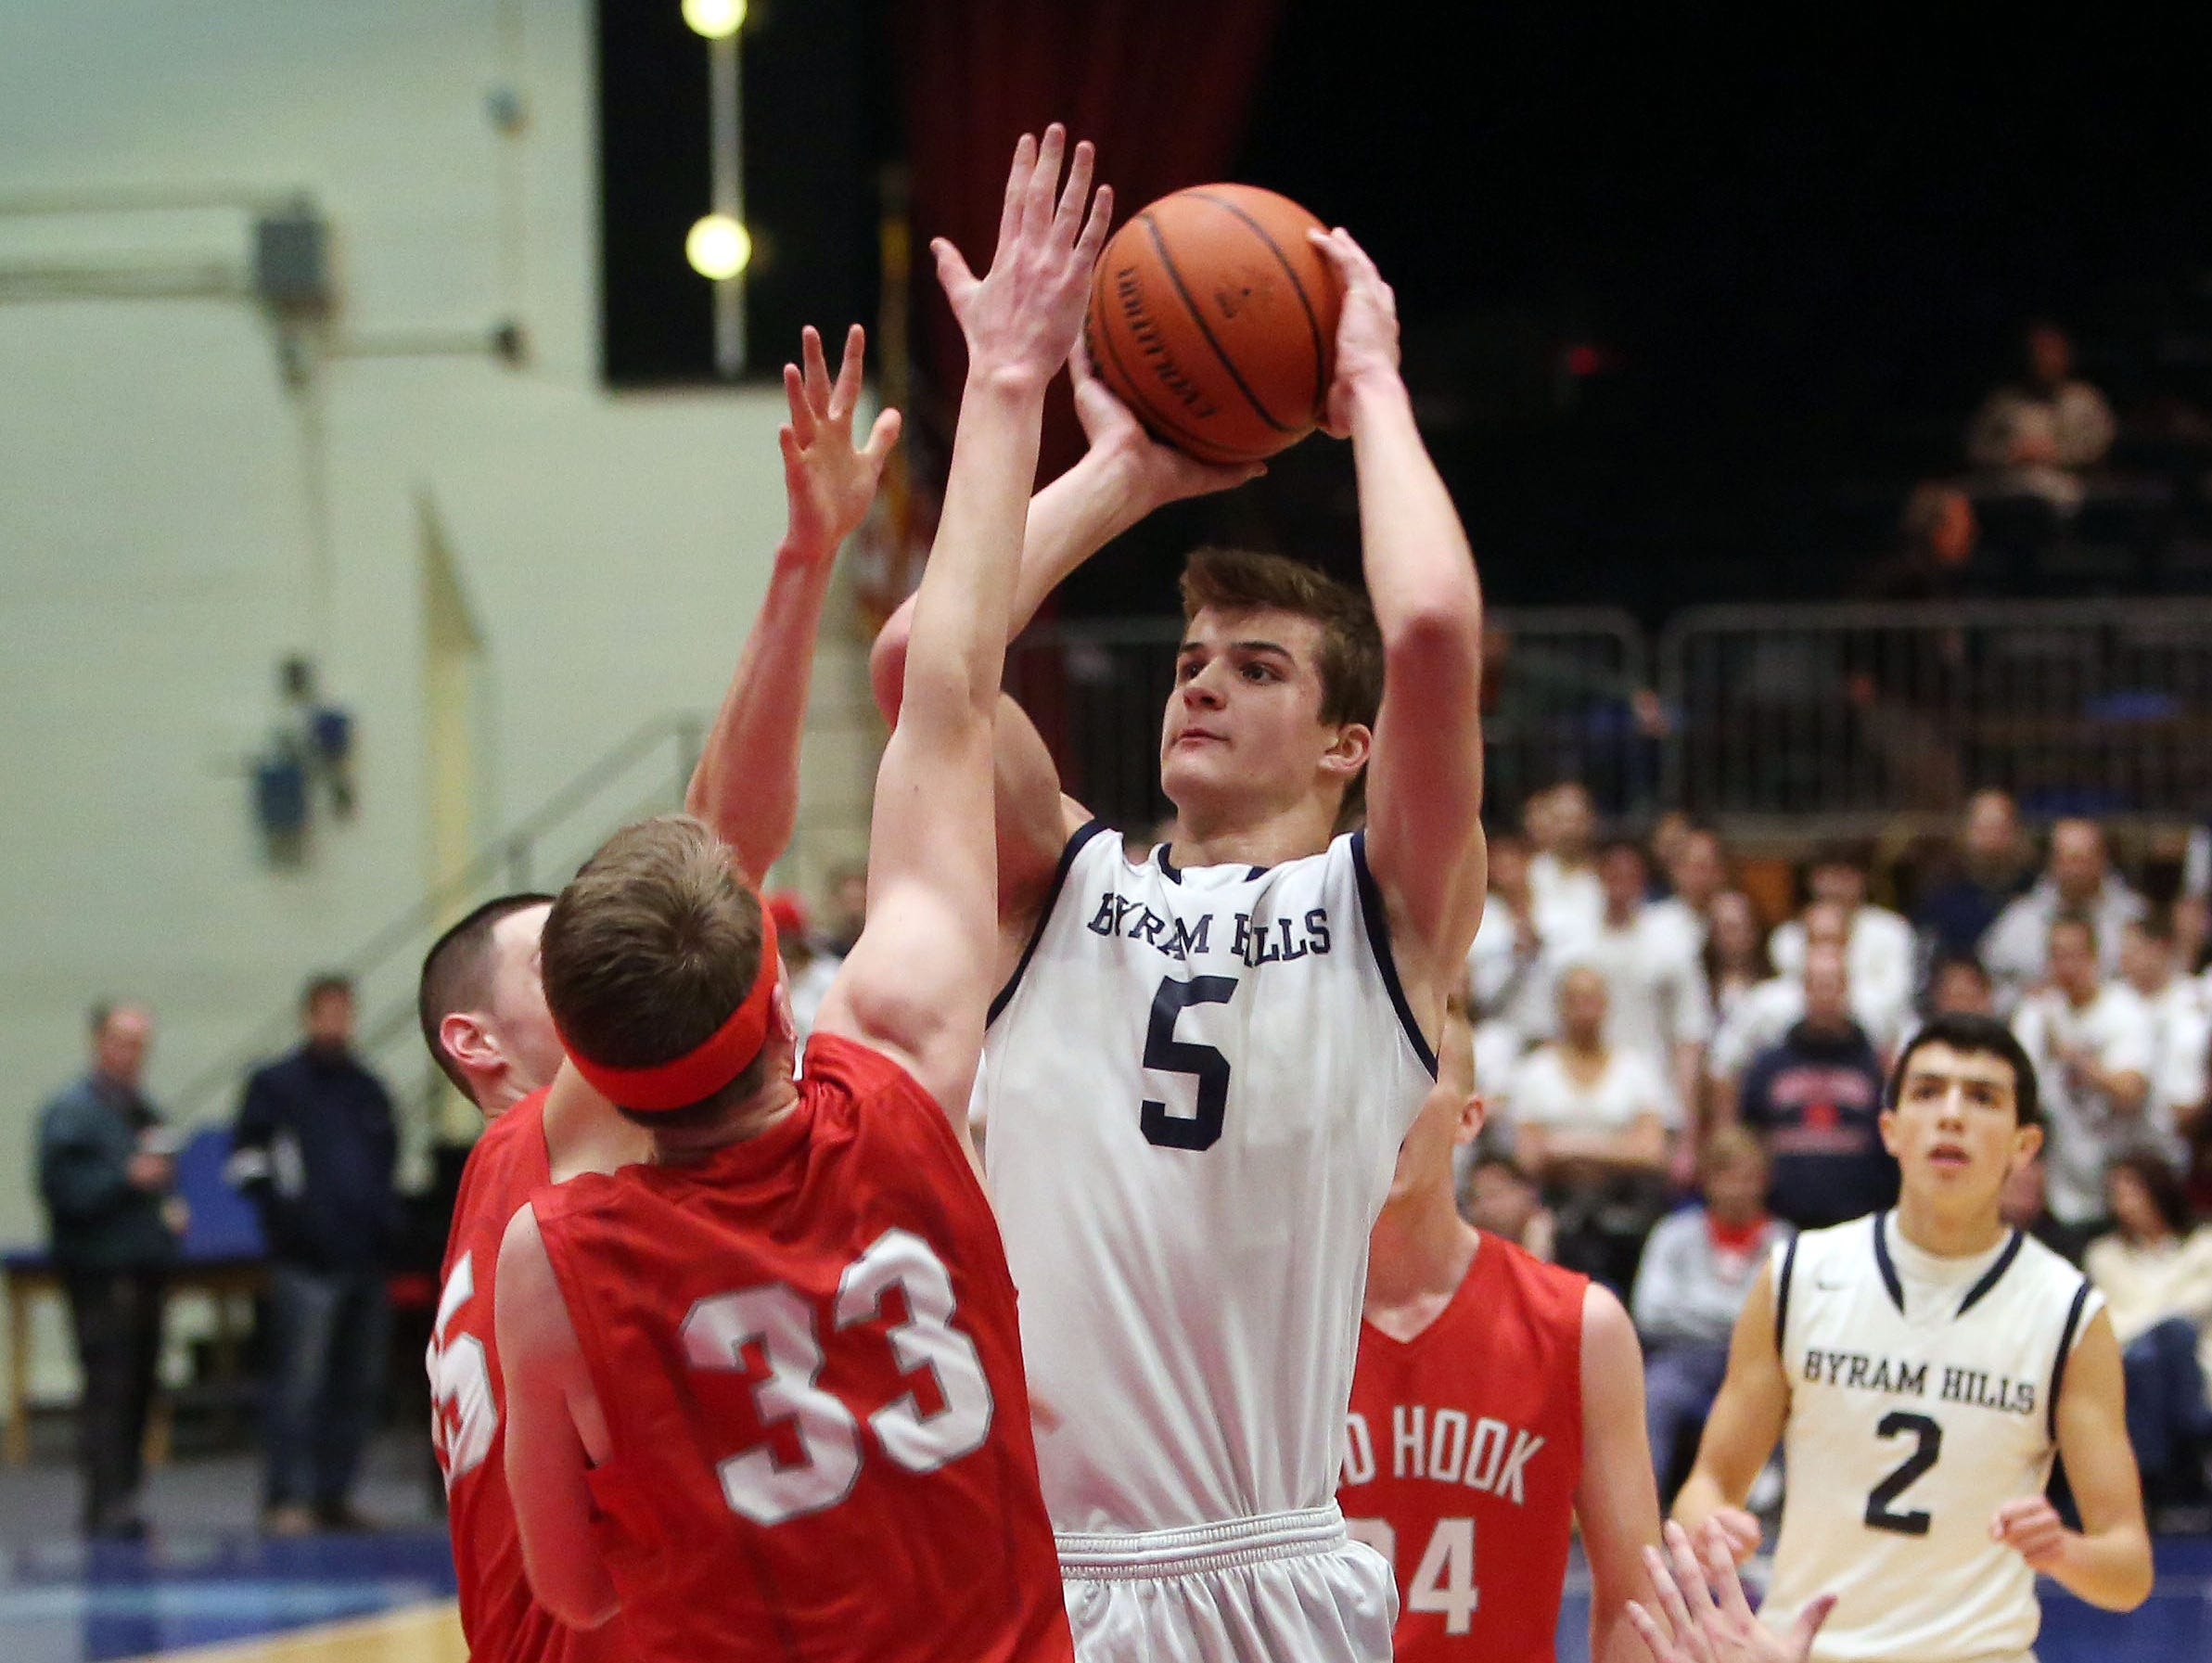 Byram Hills' Matt Groll (5) puts up a shot against Red Hook during the boys Class A basketball playoff game at the Westchester County Center in White Plains March. 1, 2016.